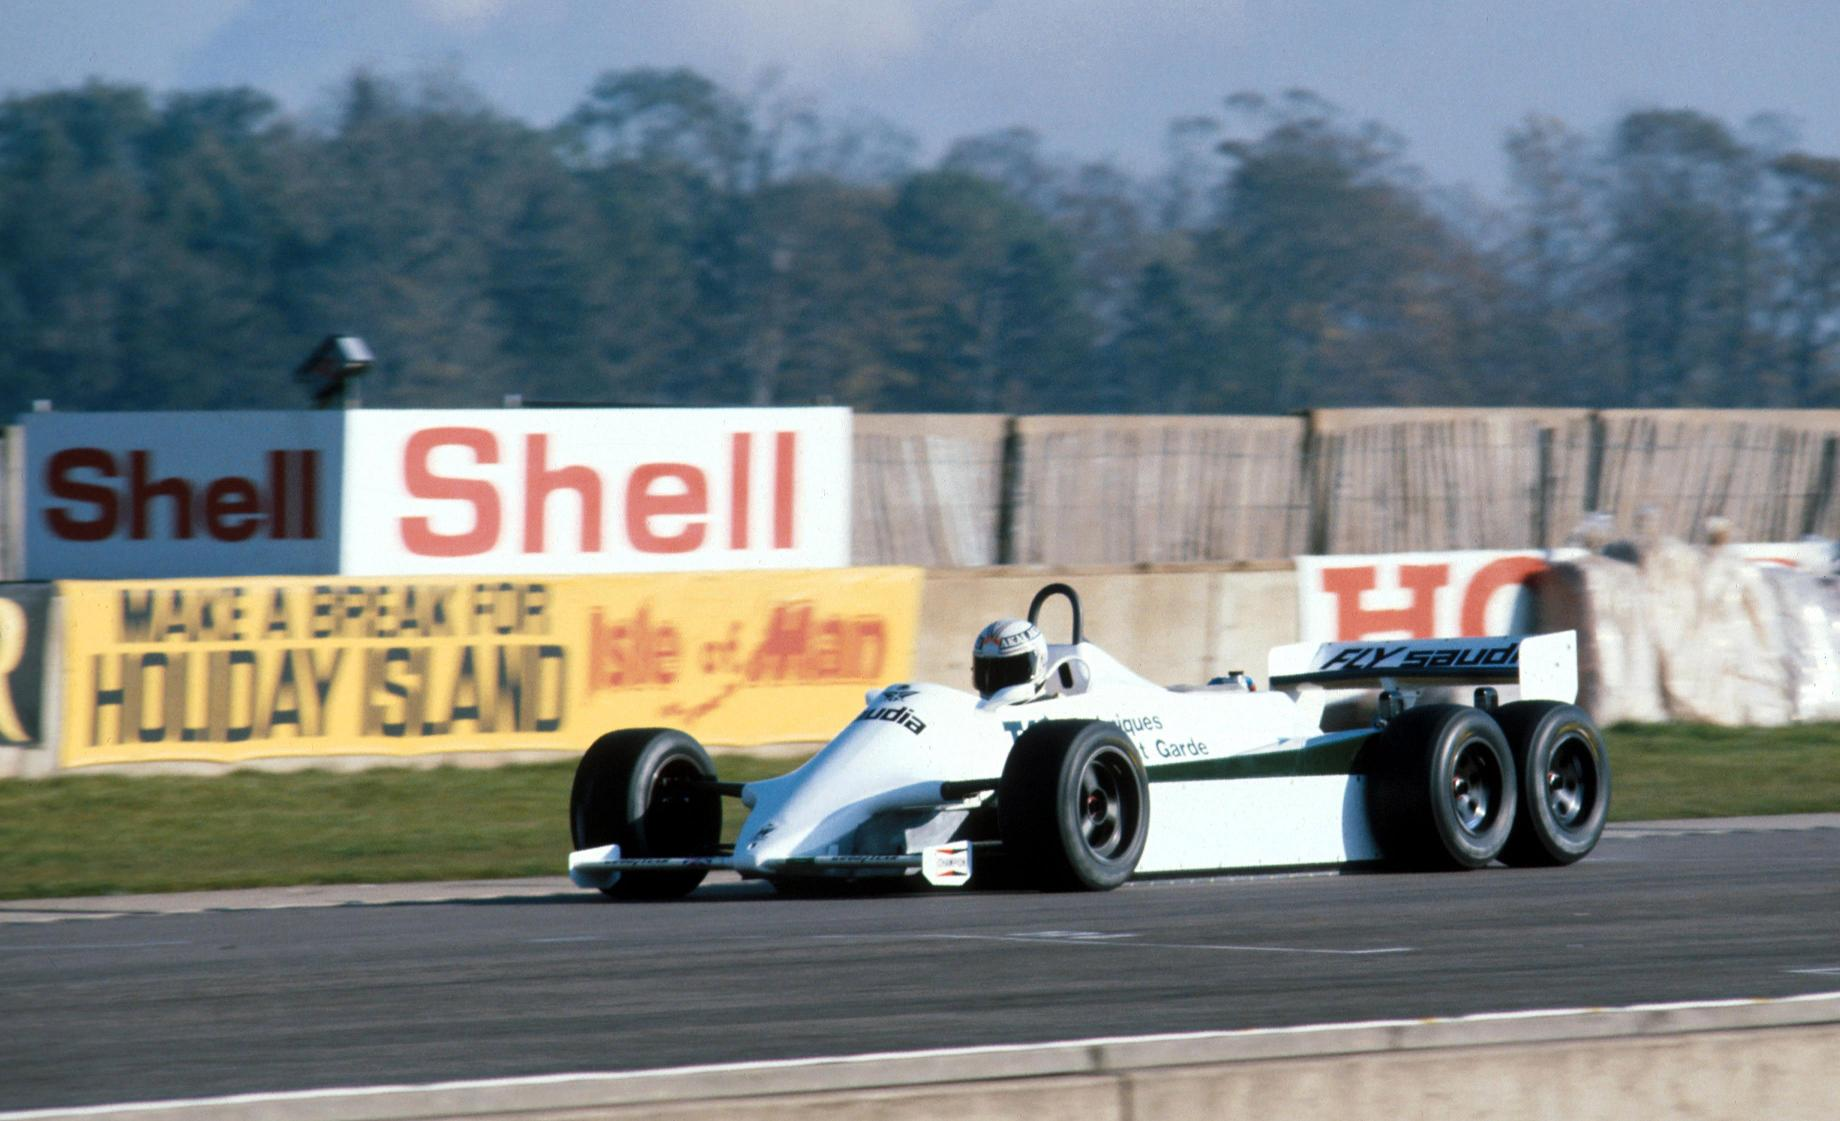 williams-1982-6 wheeler-01b.jpg